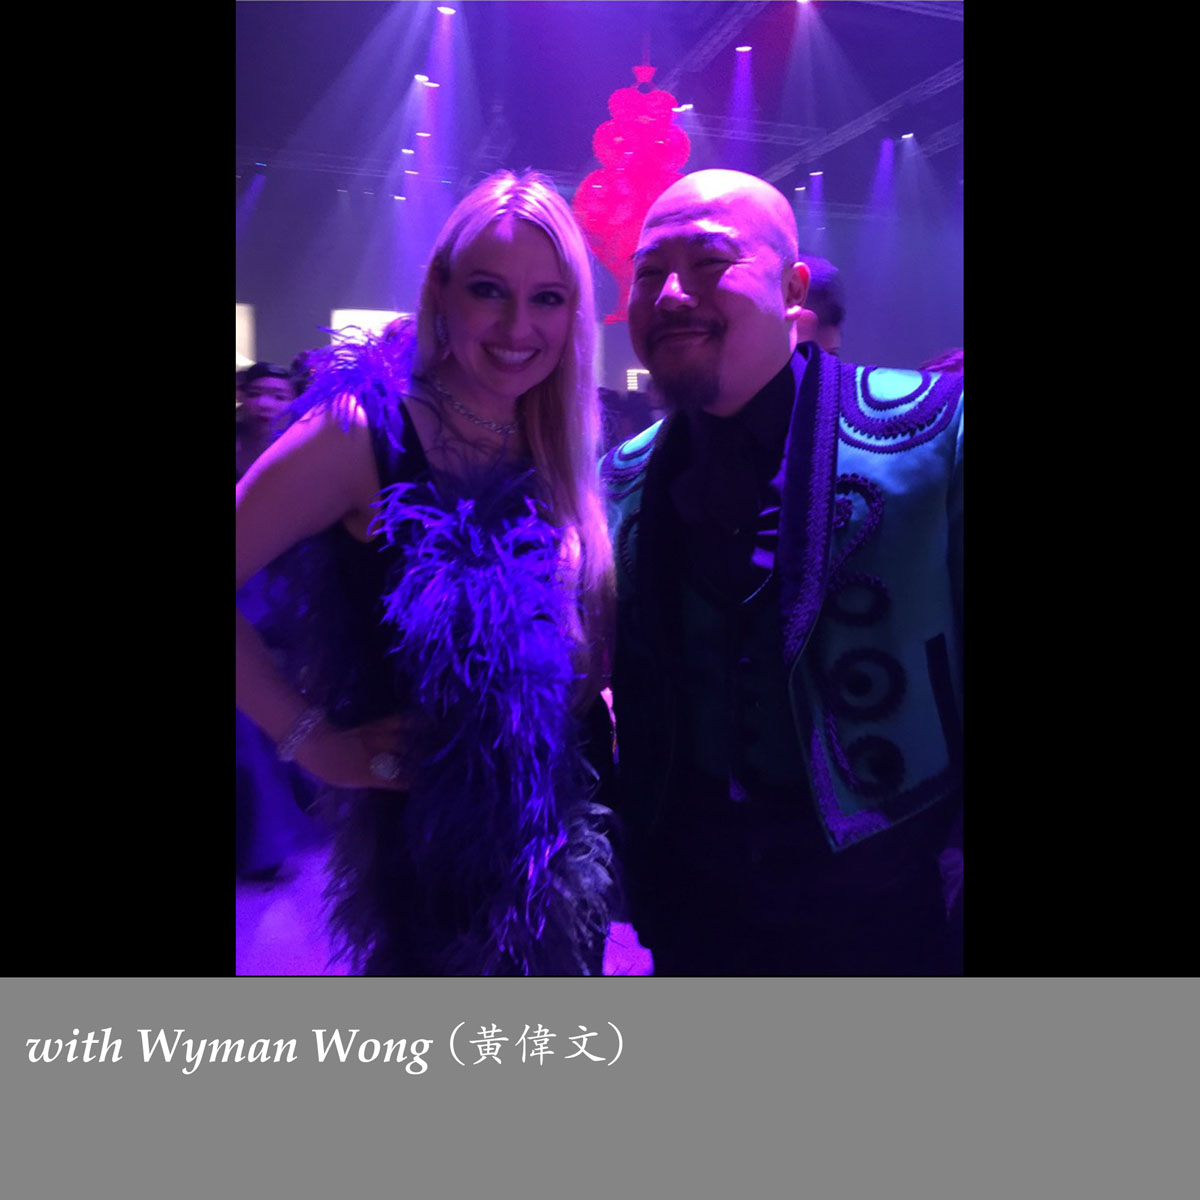 with-Wyman-Wong